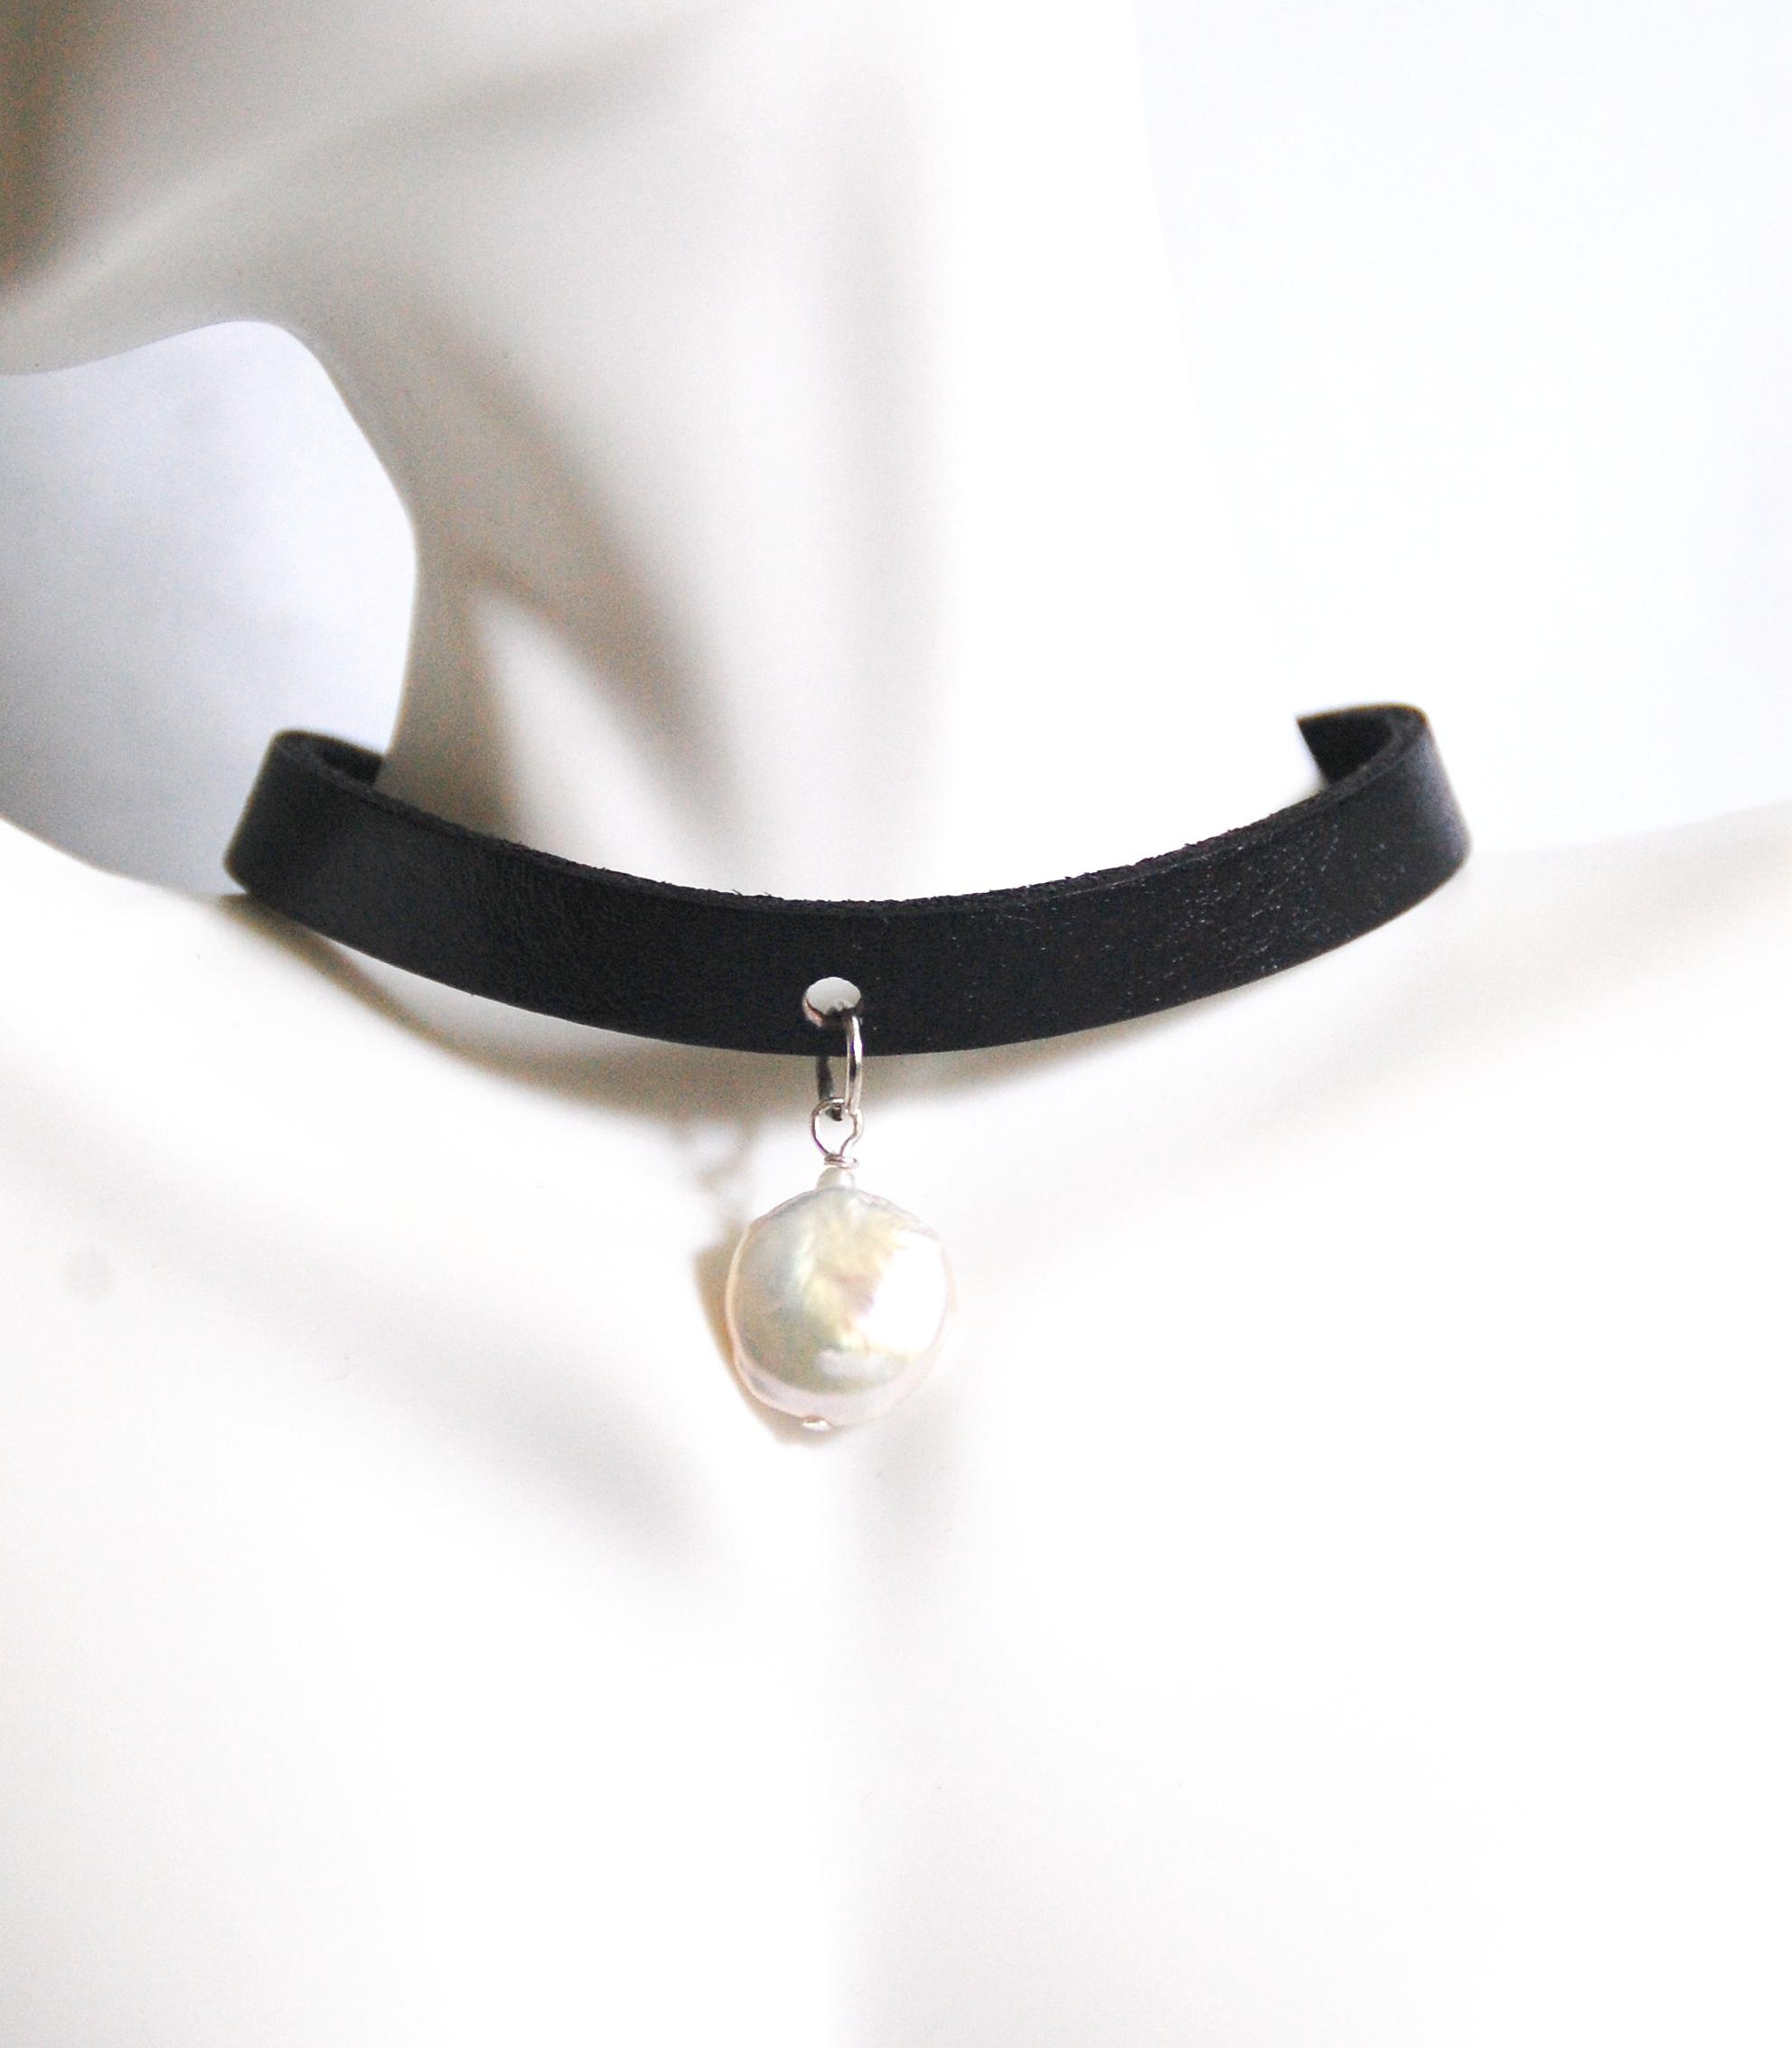 Genuine Leather Choker Necklace With Cultured Fresh Water Pearl Choker  Necklace Leather Necklace  Leather Jewelrycollarfresh Waterpearl Choker